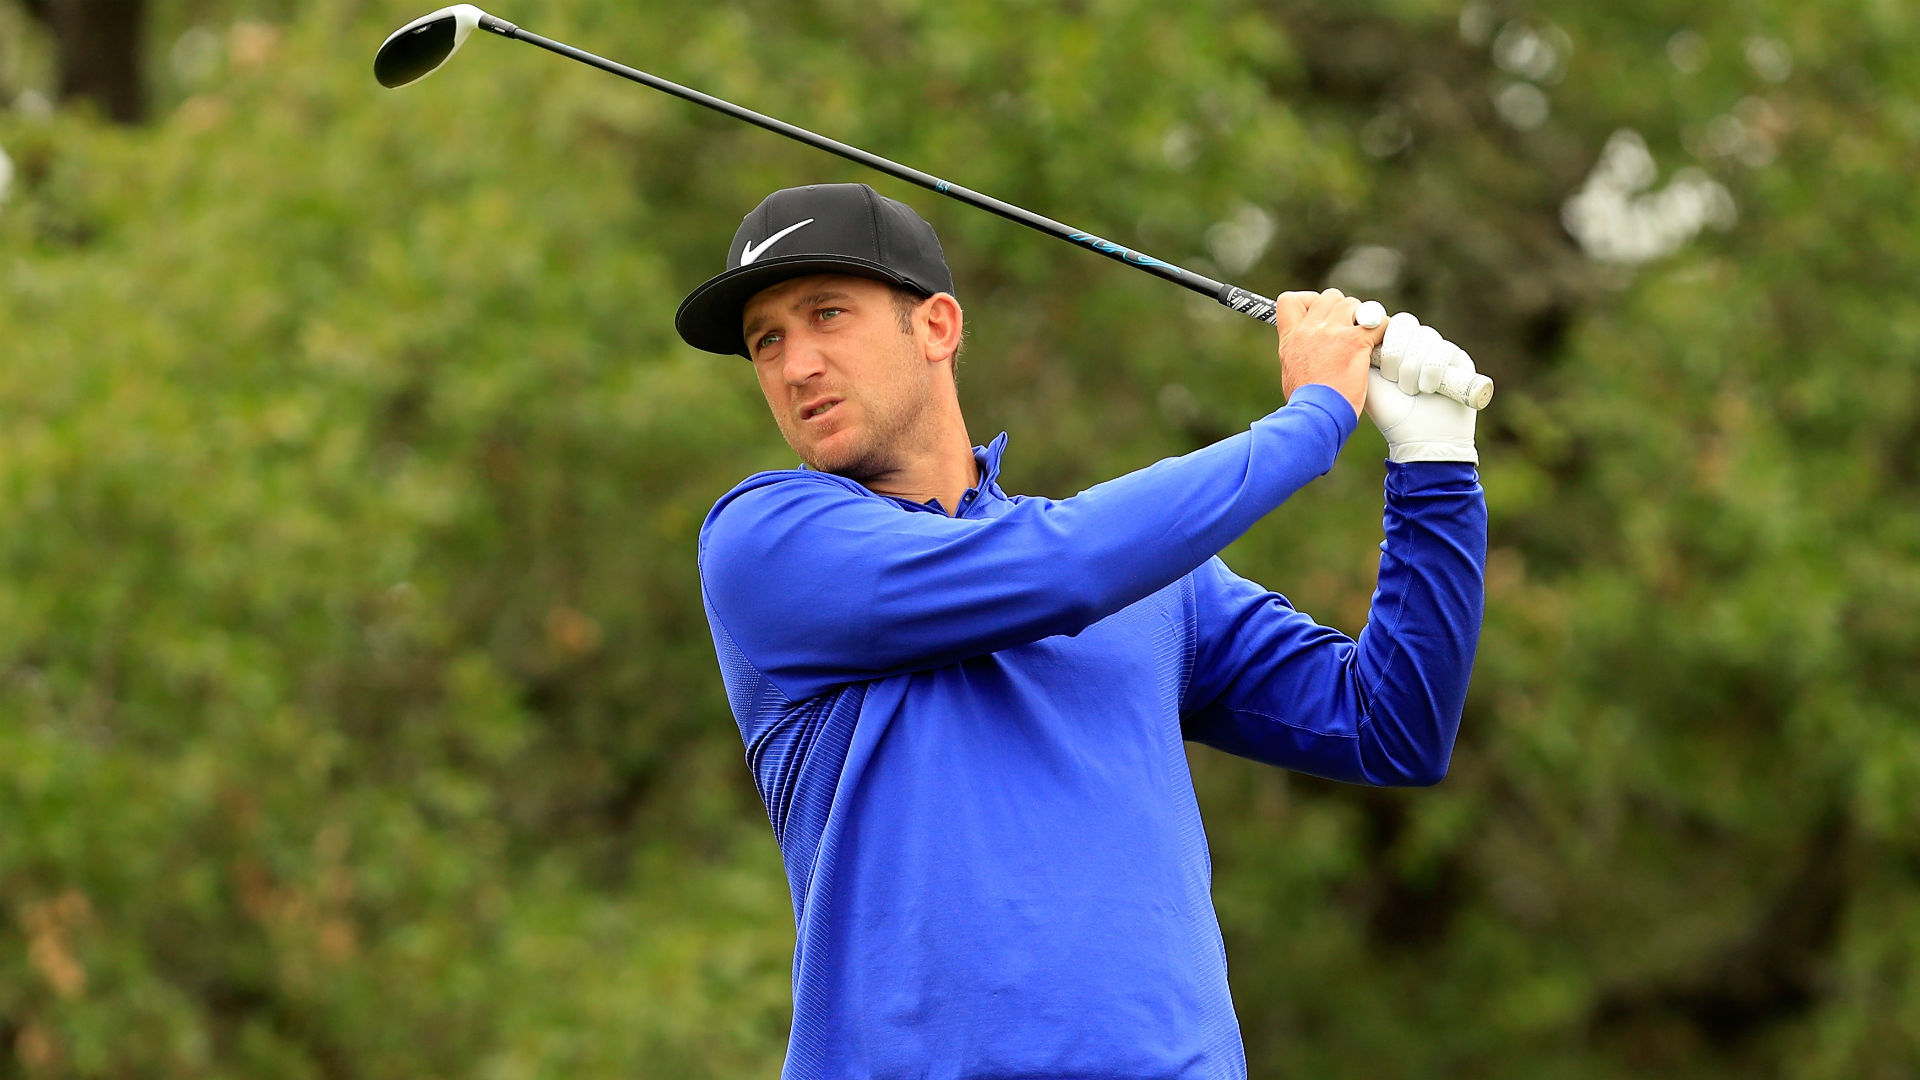 Ryan Palmer captures season-best finish, Kevin Chappell wins Texas Open